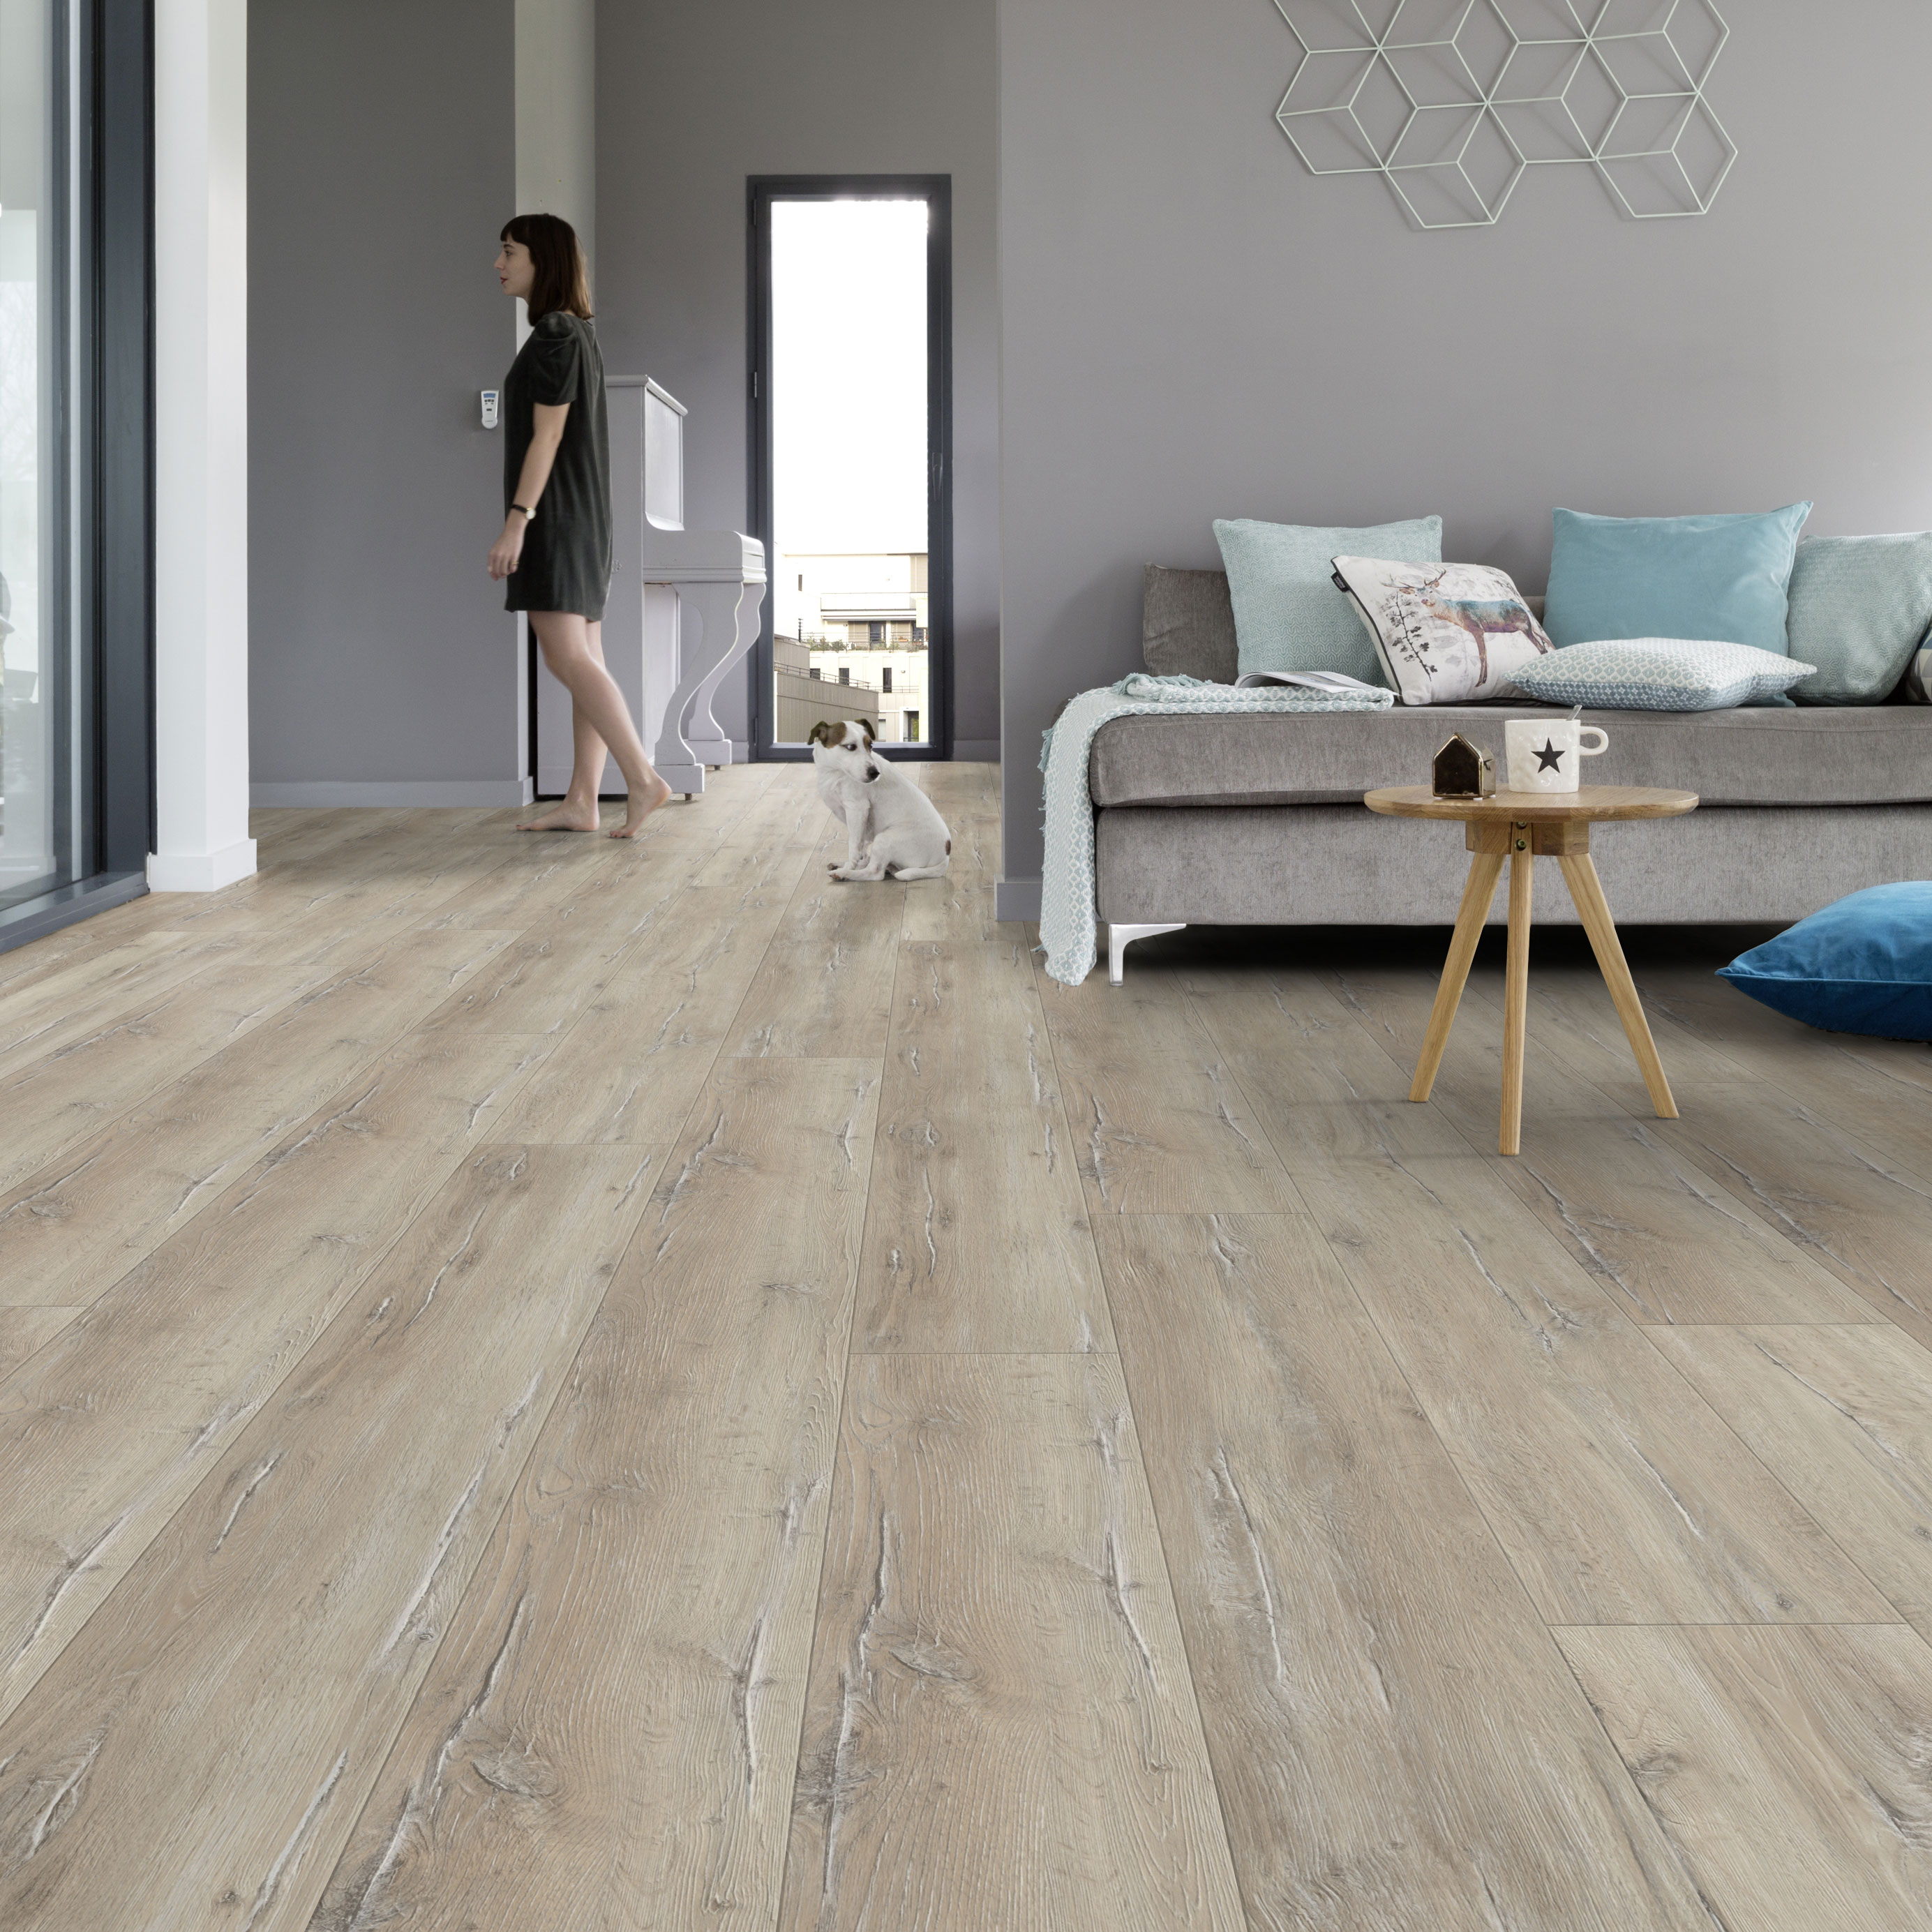 Laminatgolv Gerflor Authentic Xxl Maraba